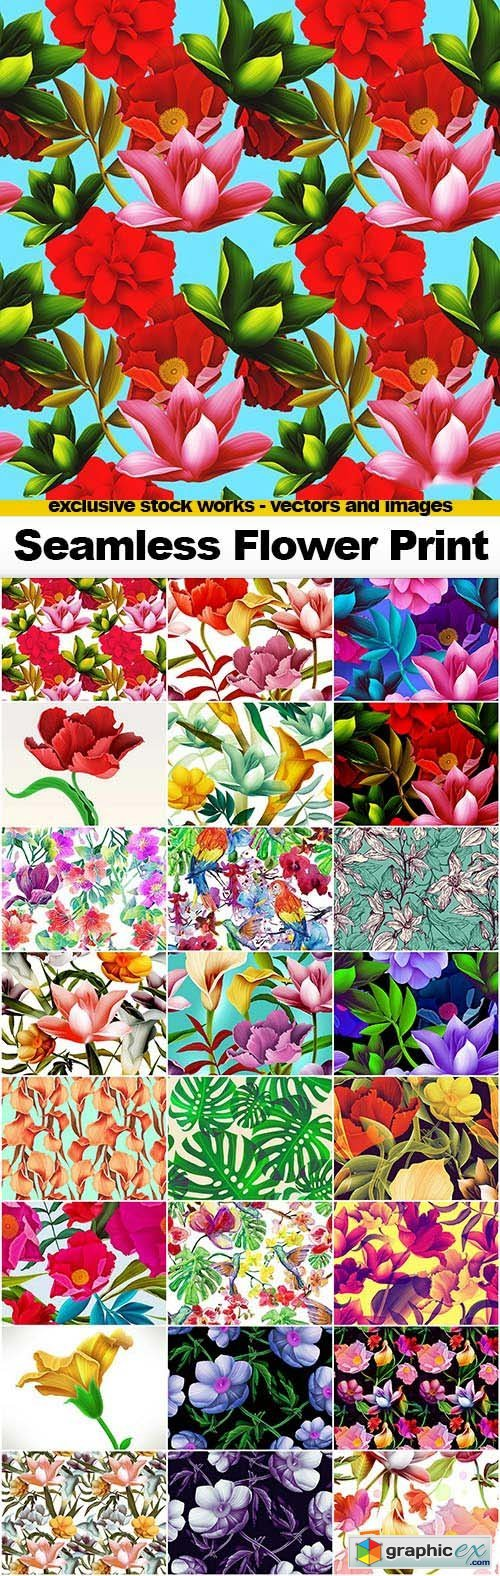 Seamless Flowers Prints - 25x JPEGs